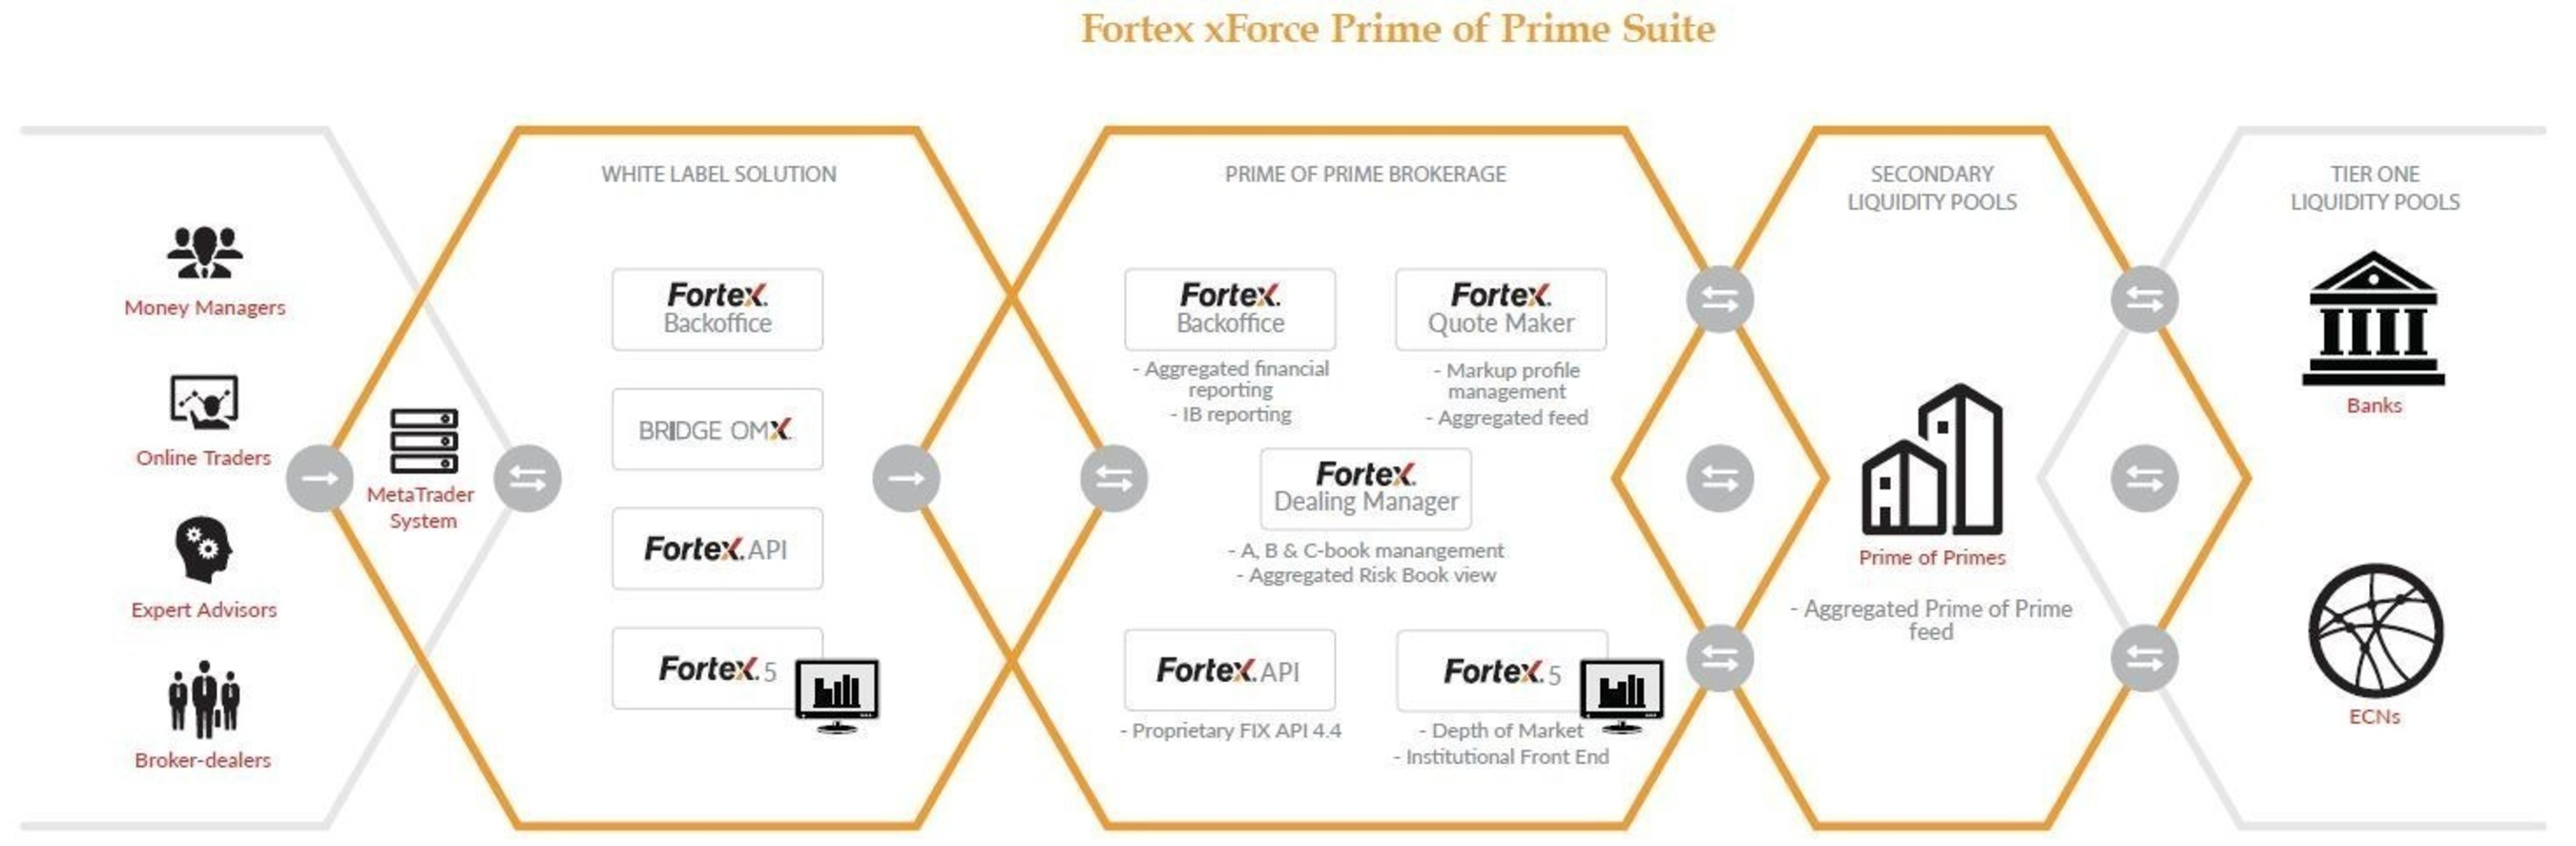 Fortex, Inc. introduces its next-generation 'xForce Prime of Prime Suite' for FX Brokers